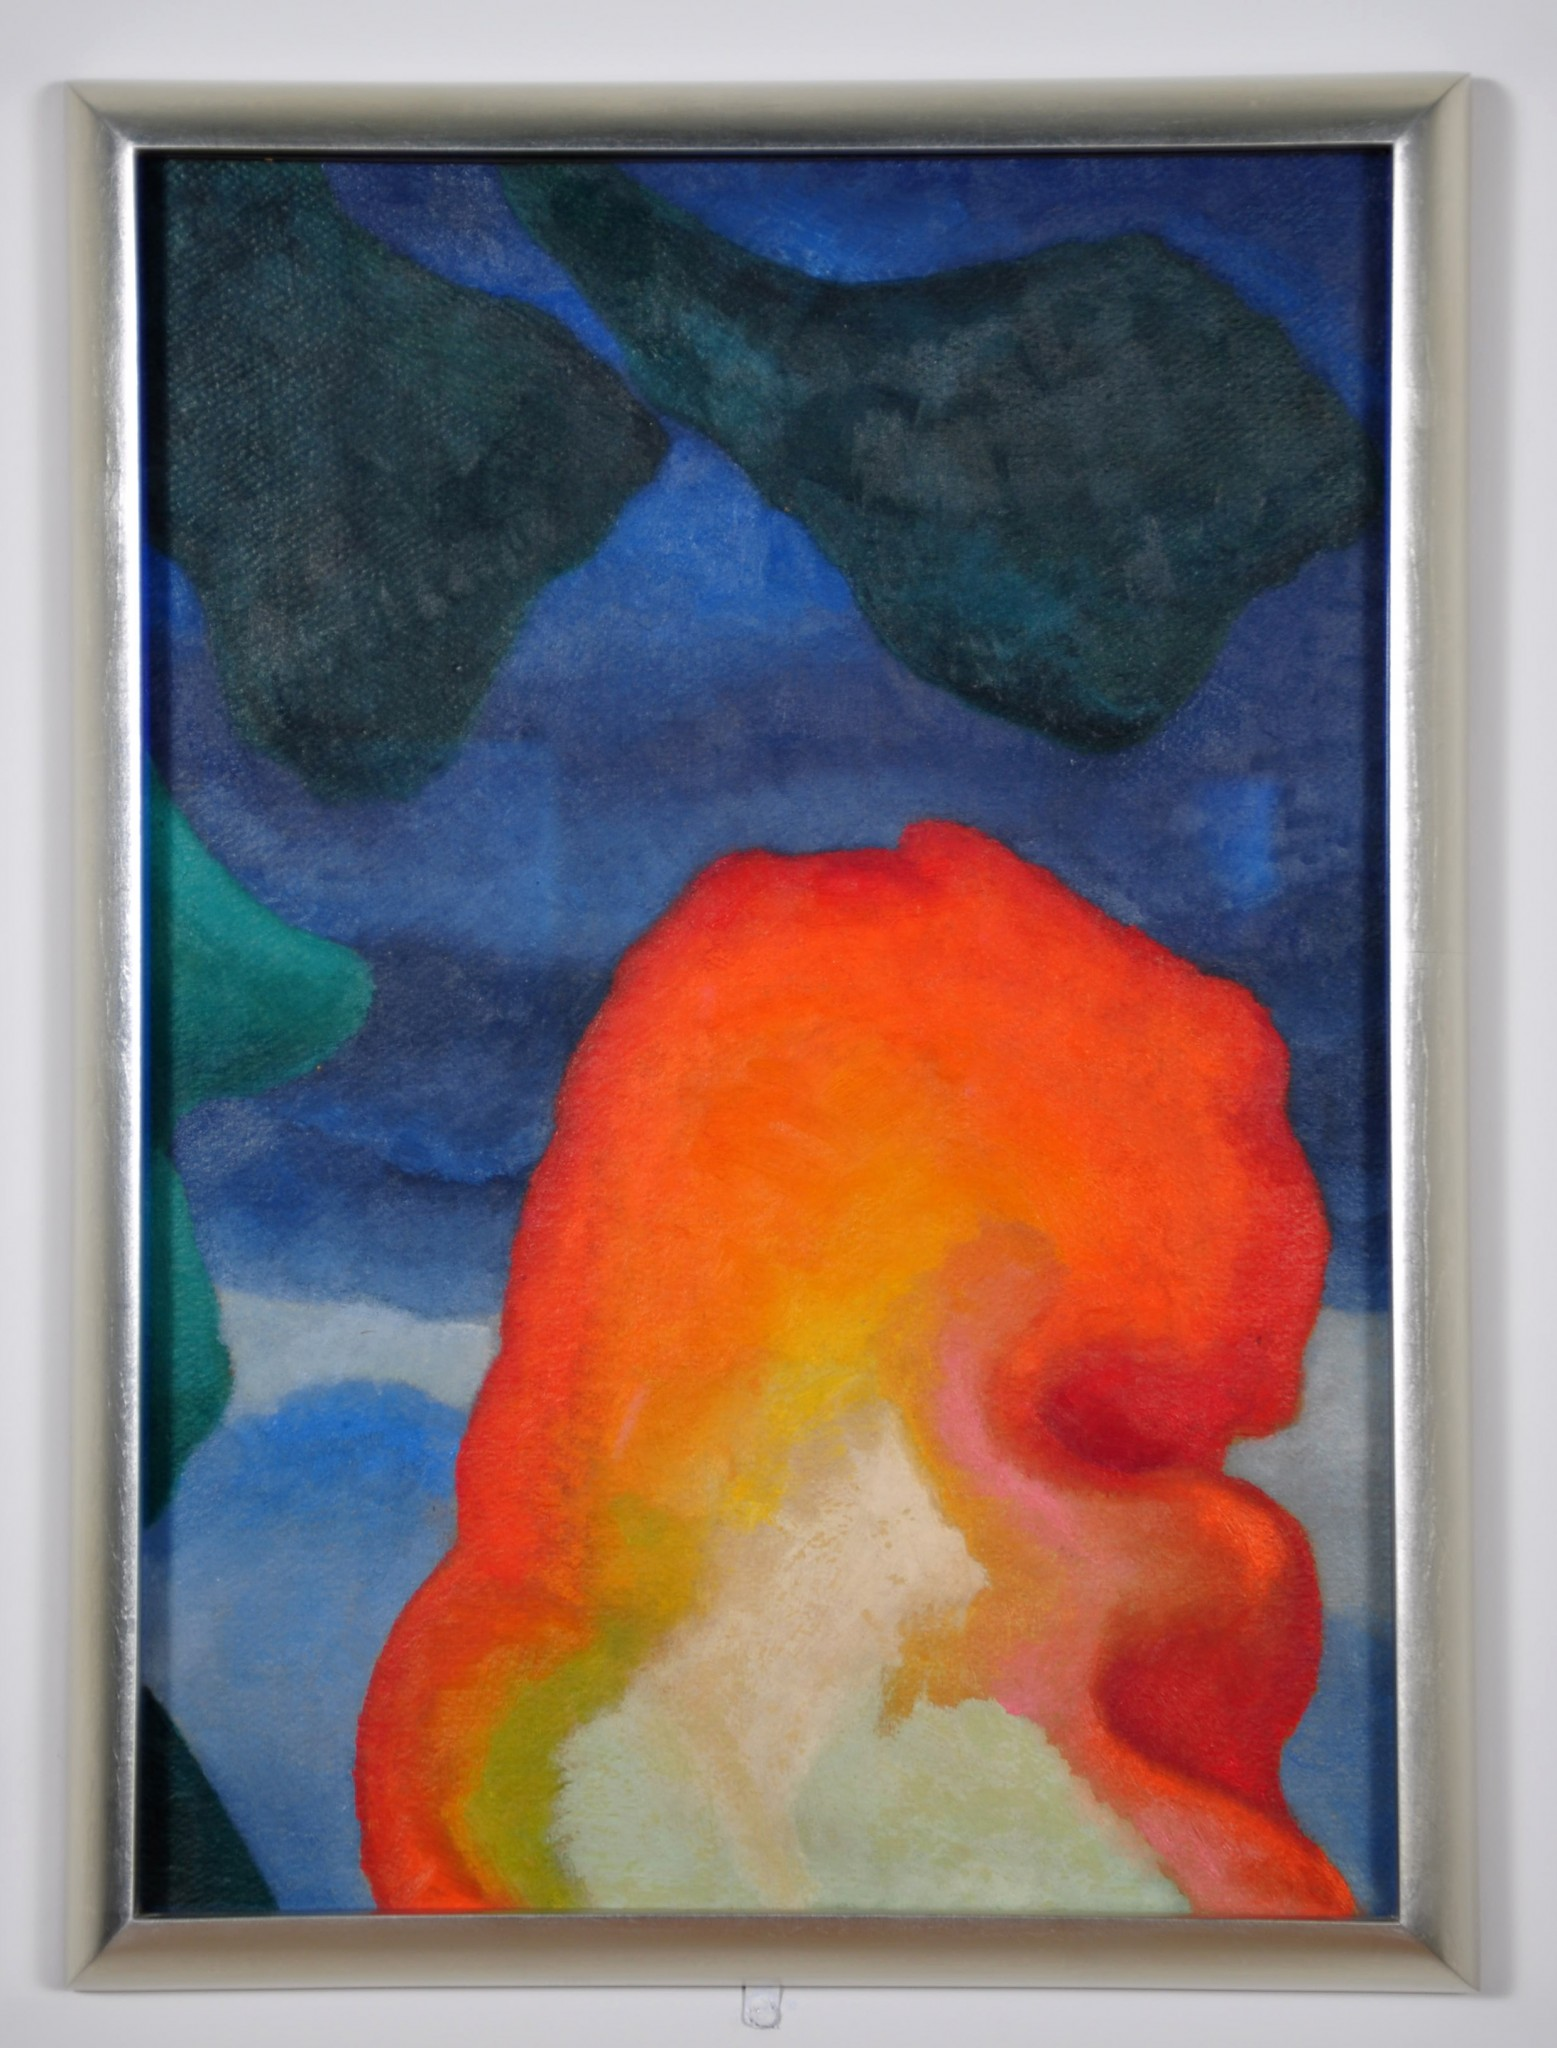 Georgia O'Keeffe's Lake George abstraction is at the University of Mississippi Museum.